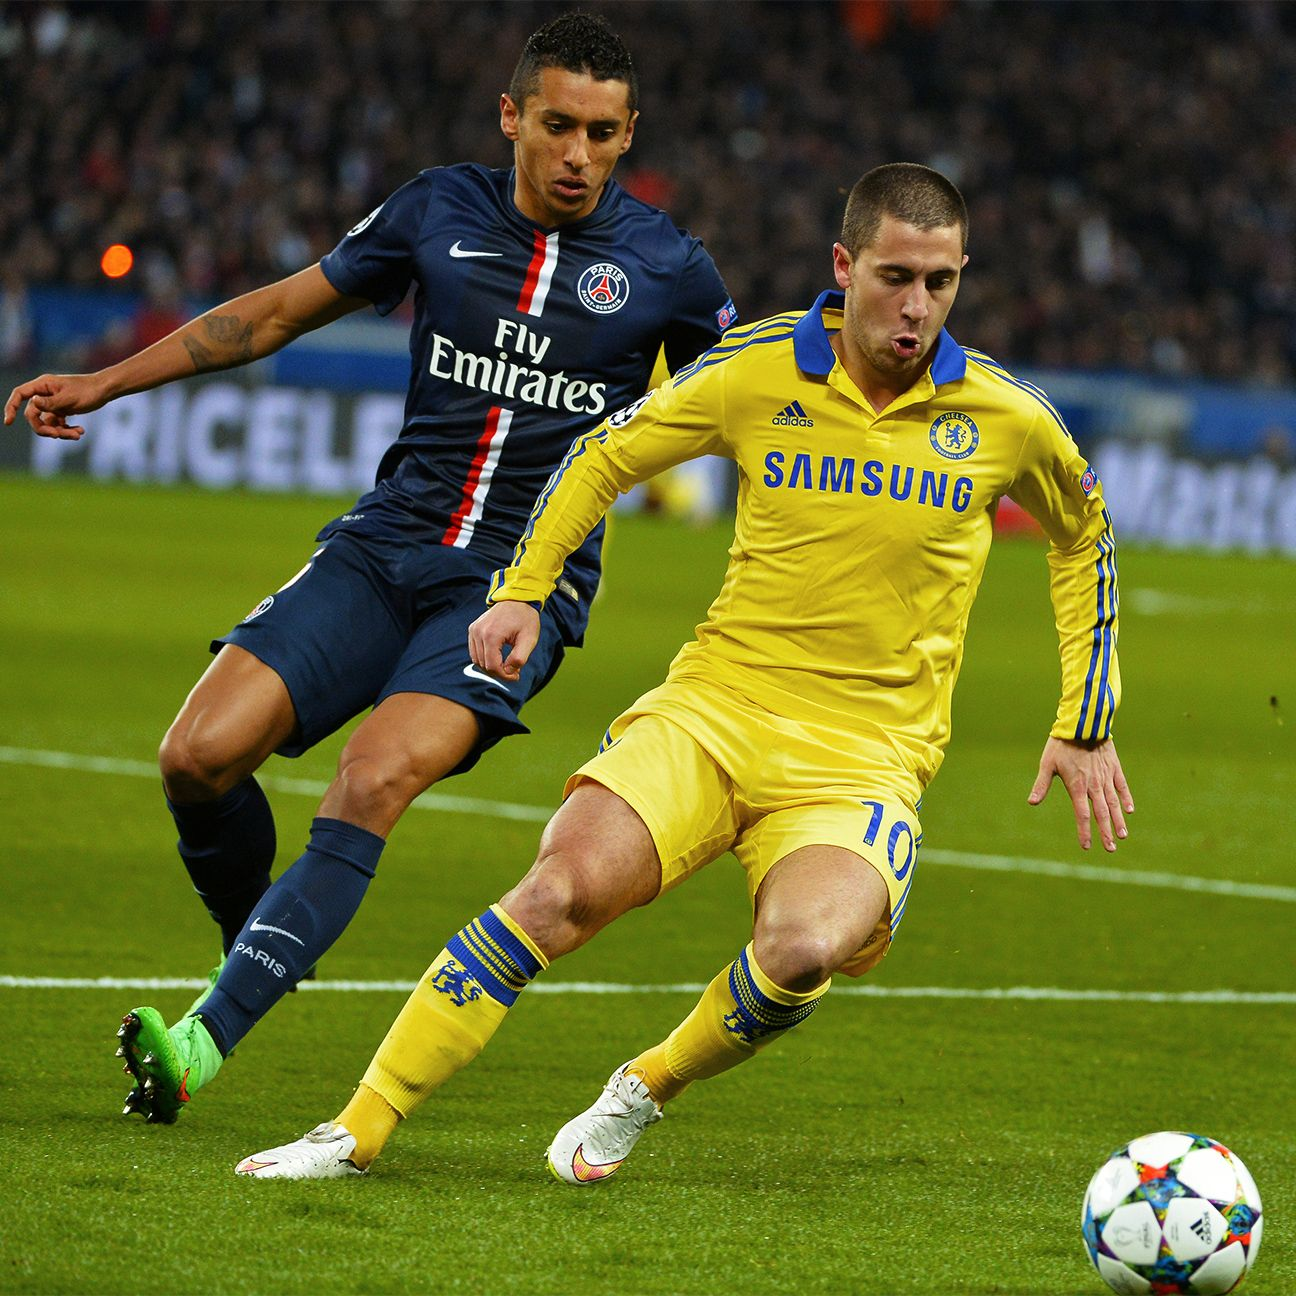 Paris Saint-Germain and Chelsea meet on Wednesday to determine which side will advance in UCL play.